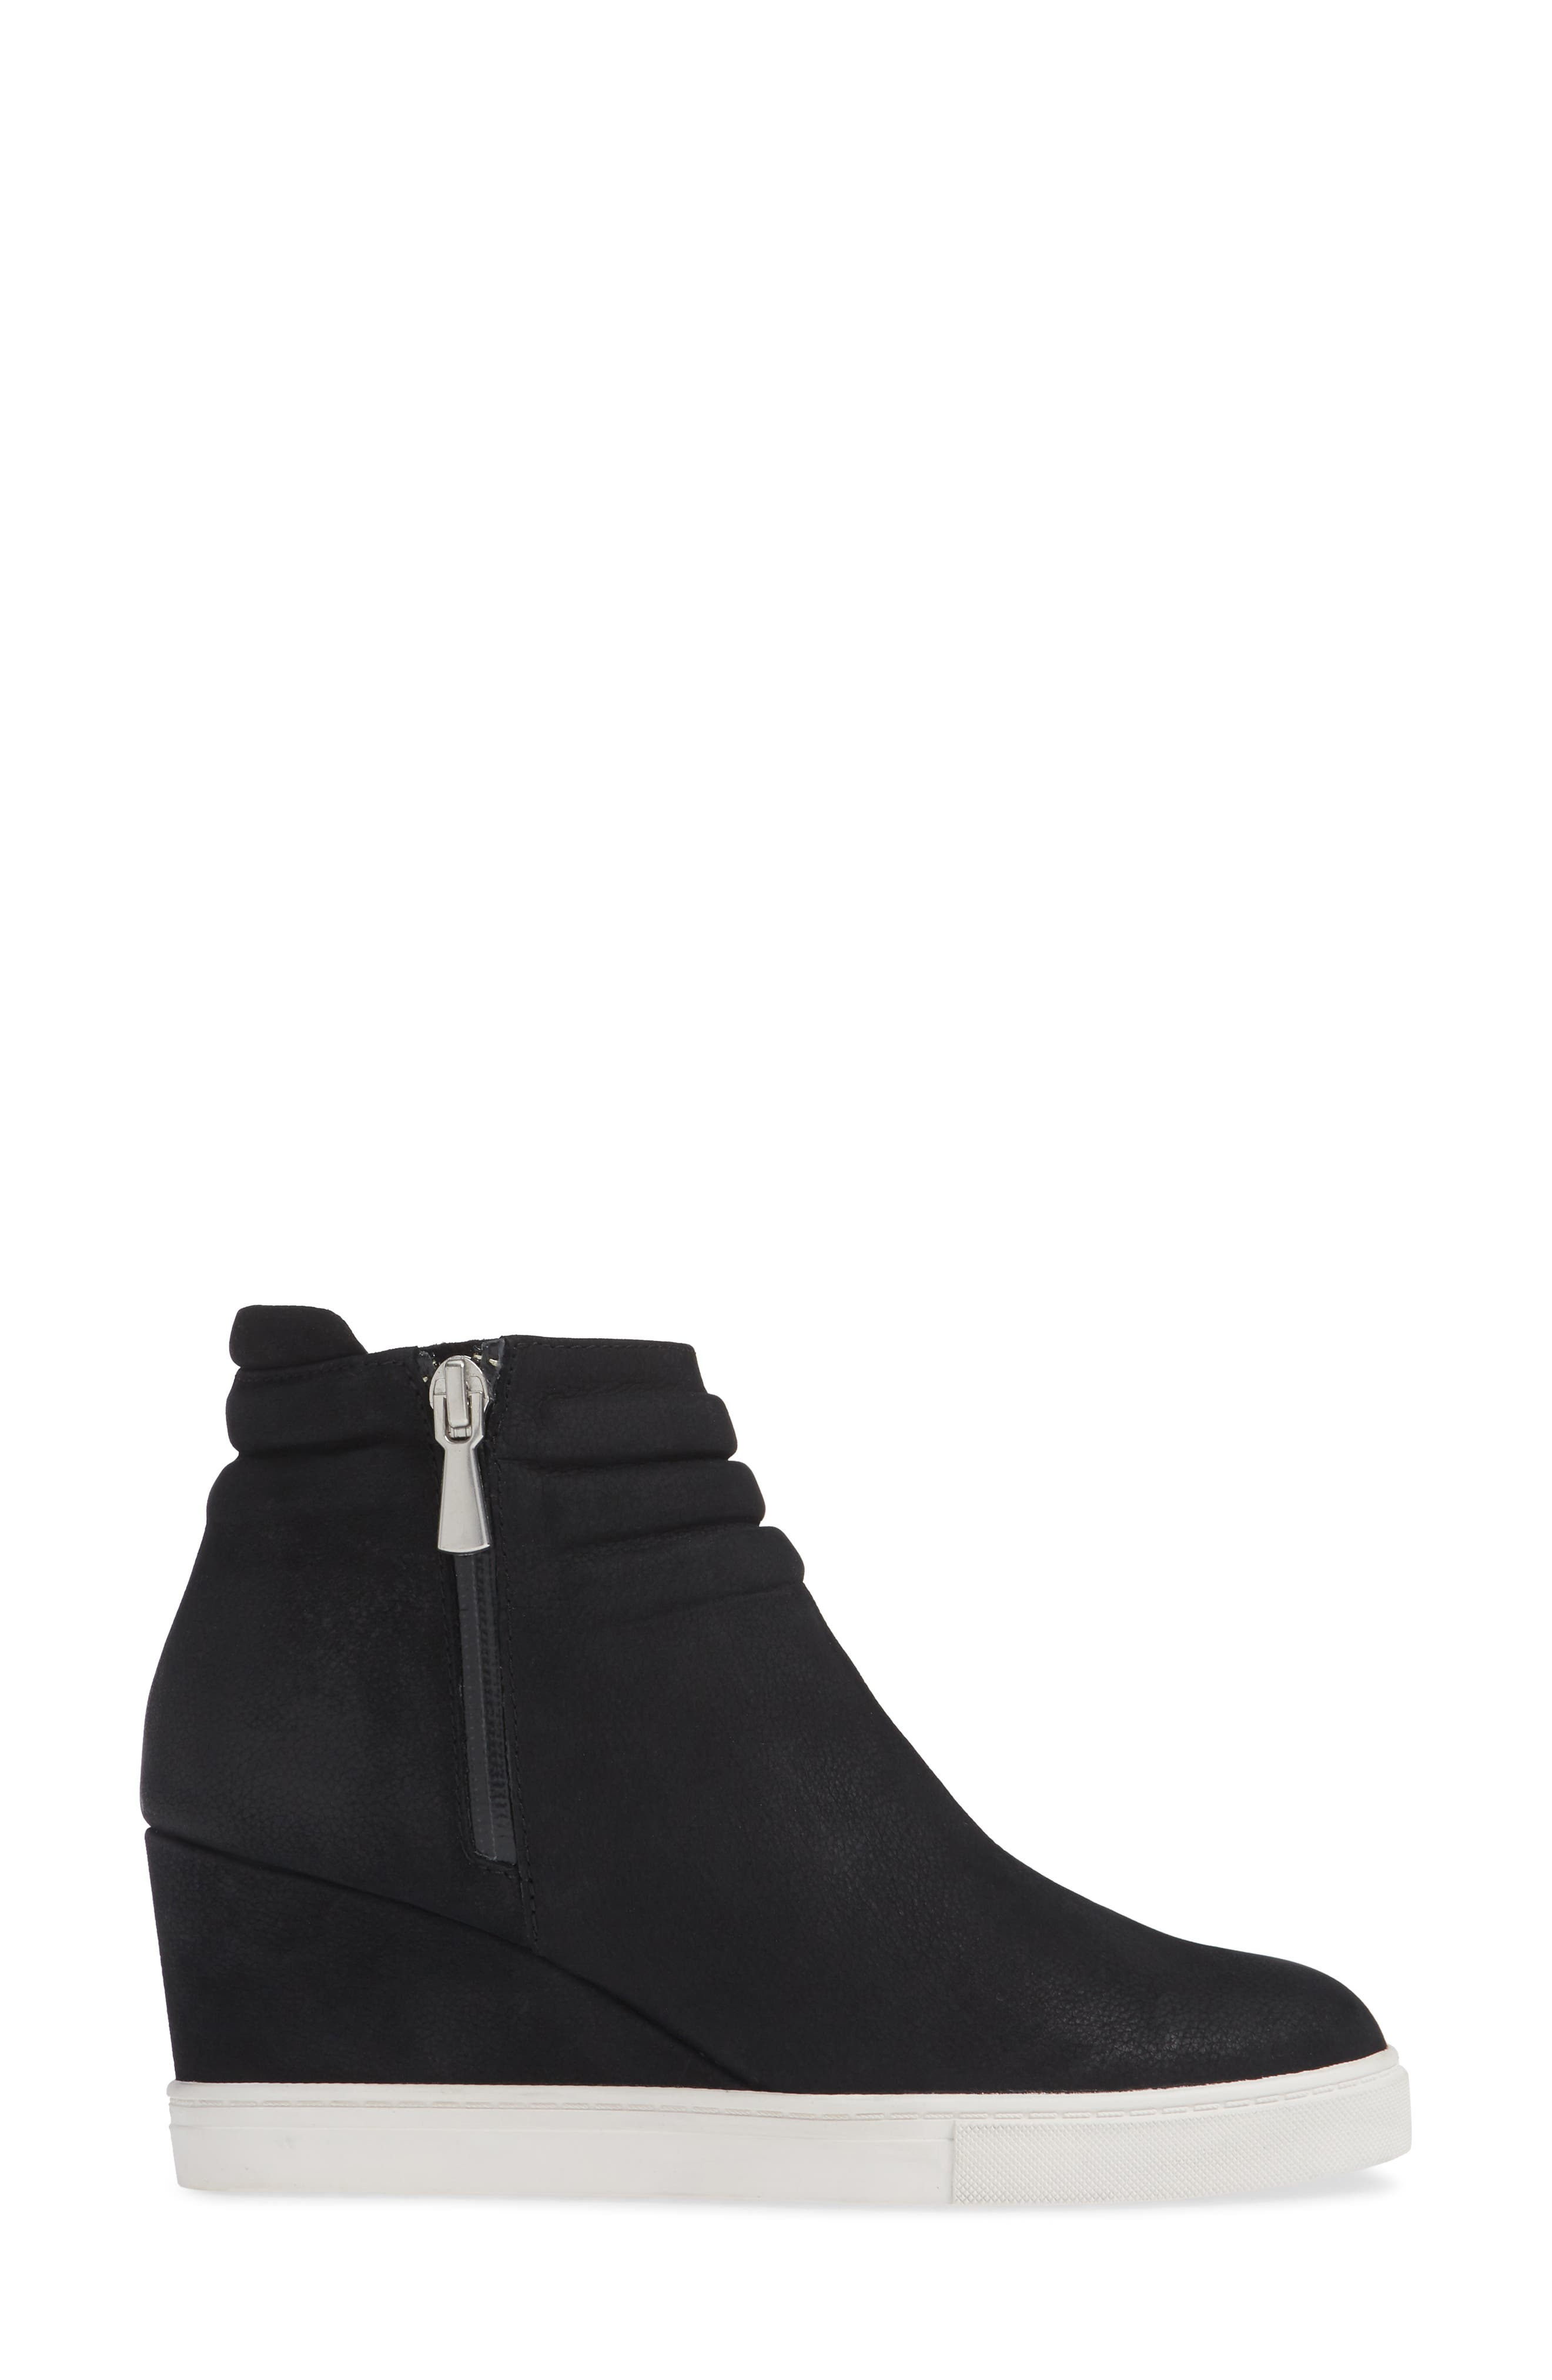 LINEA PAOLO, Flo Waterproof Wedge Bootie, Alternate thumbnail 3, color, BLACK LEATHER